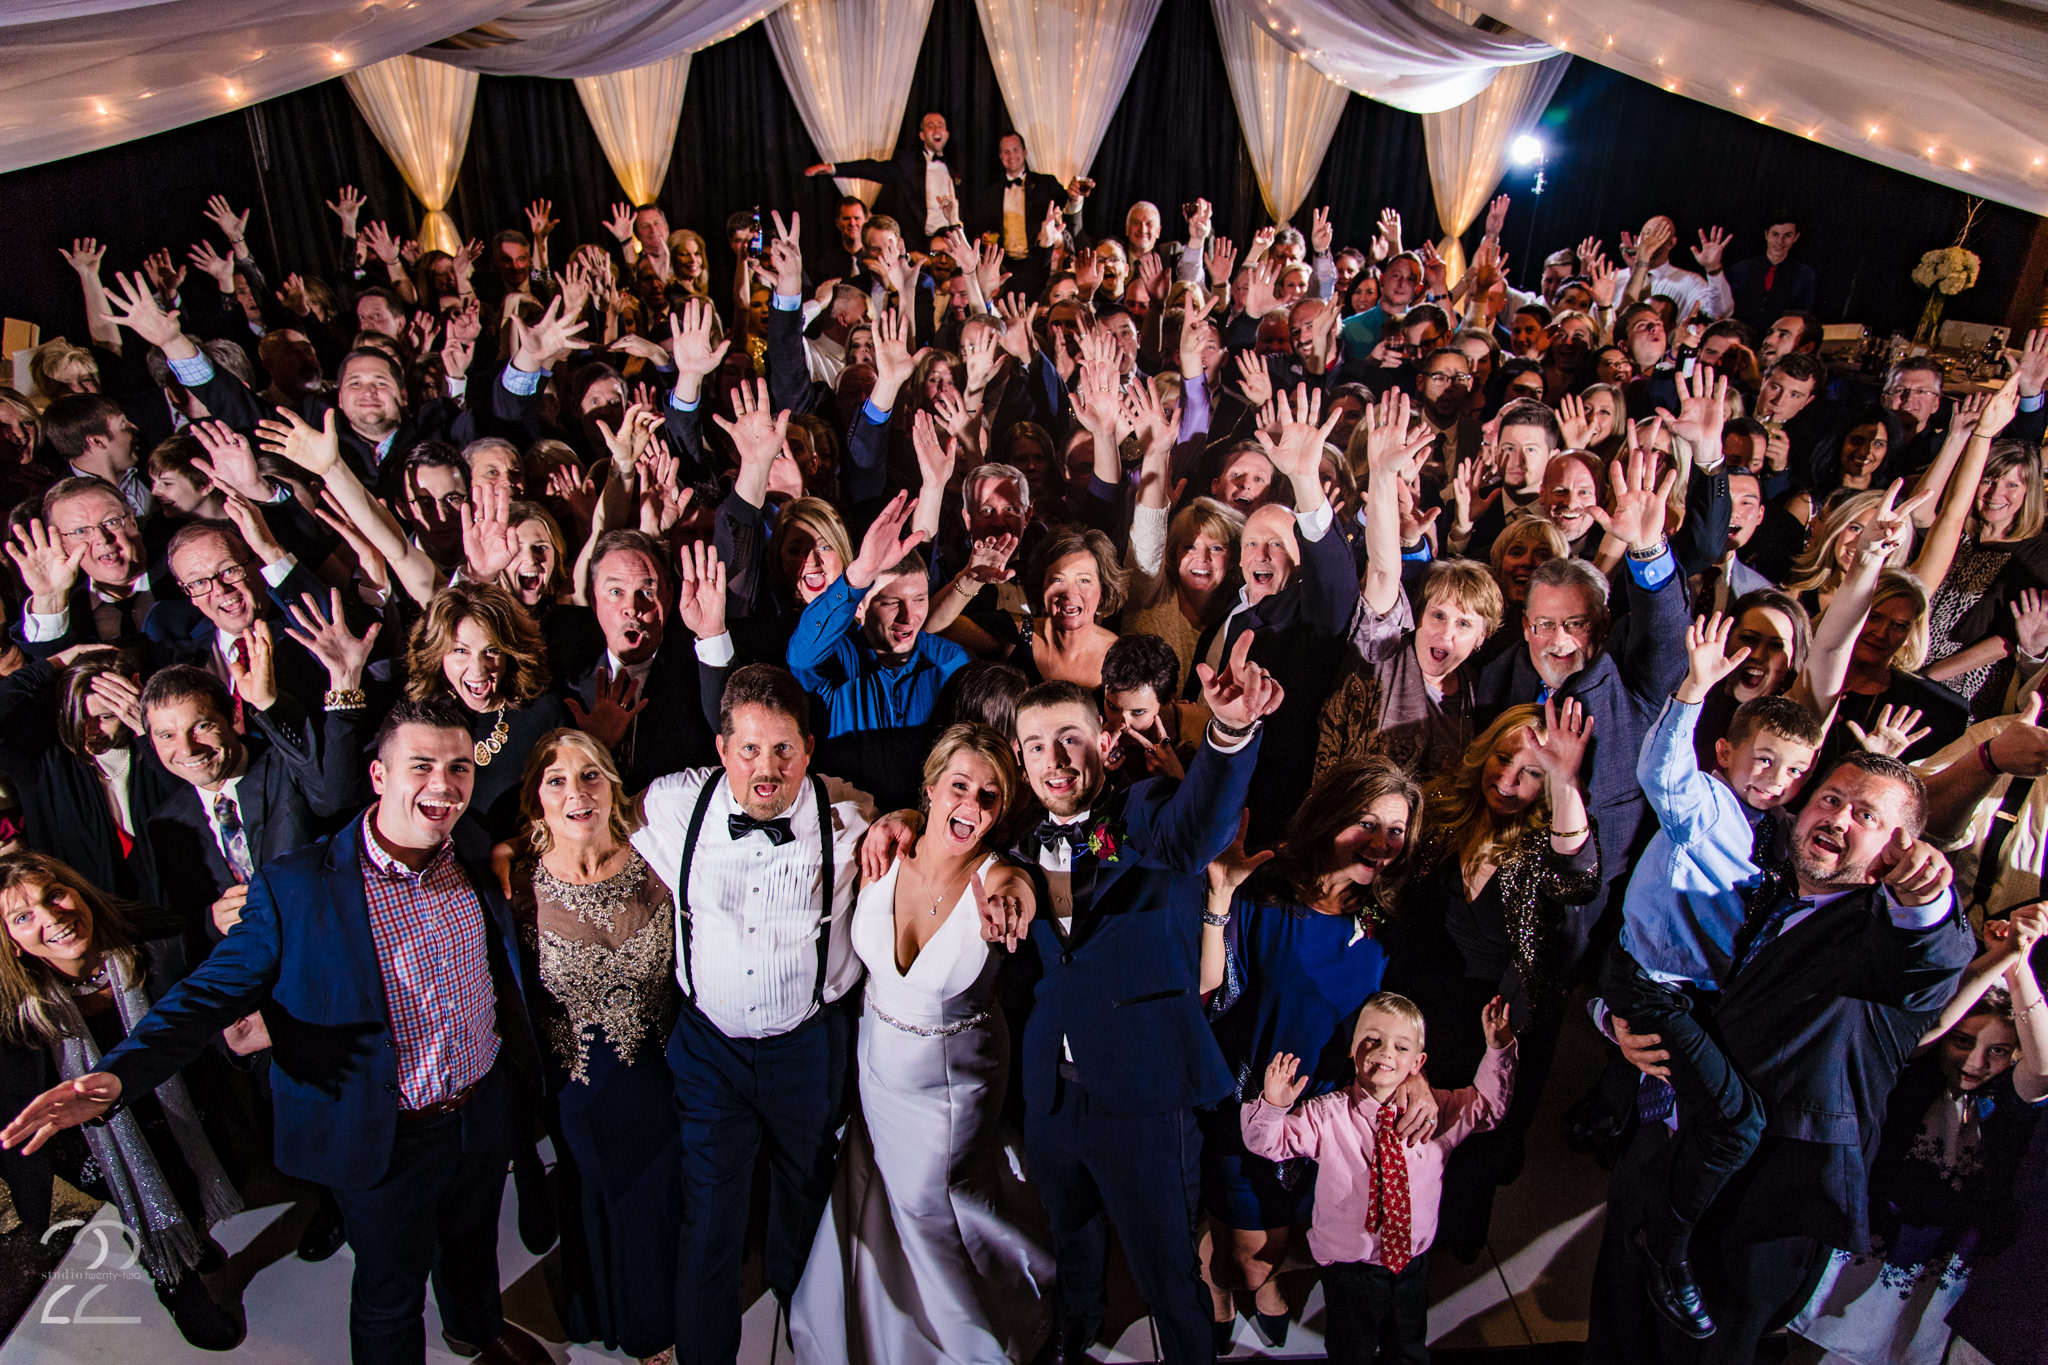 Party Pleasers Services - Wedding DJs in Dayton - Top of the Market - Downtown Winter Wedding